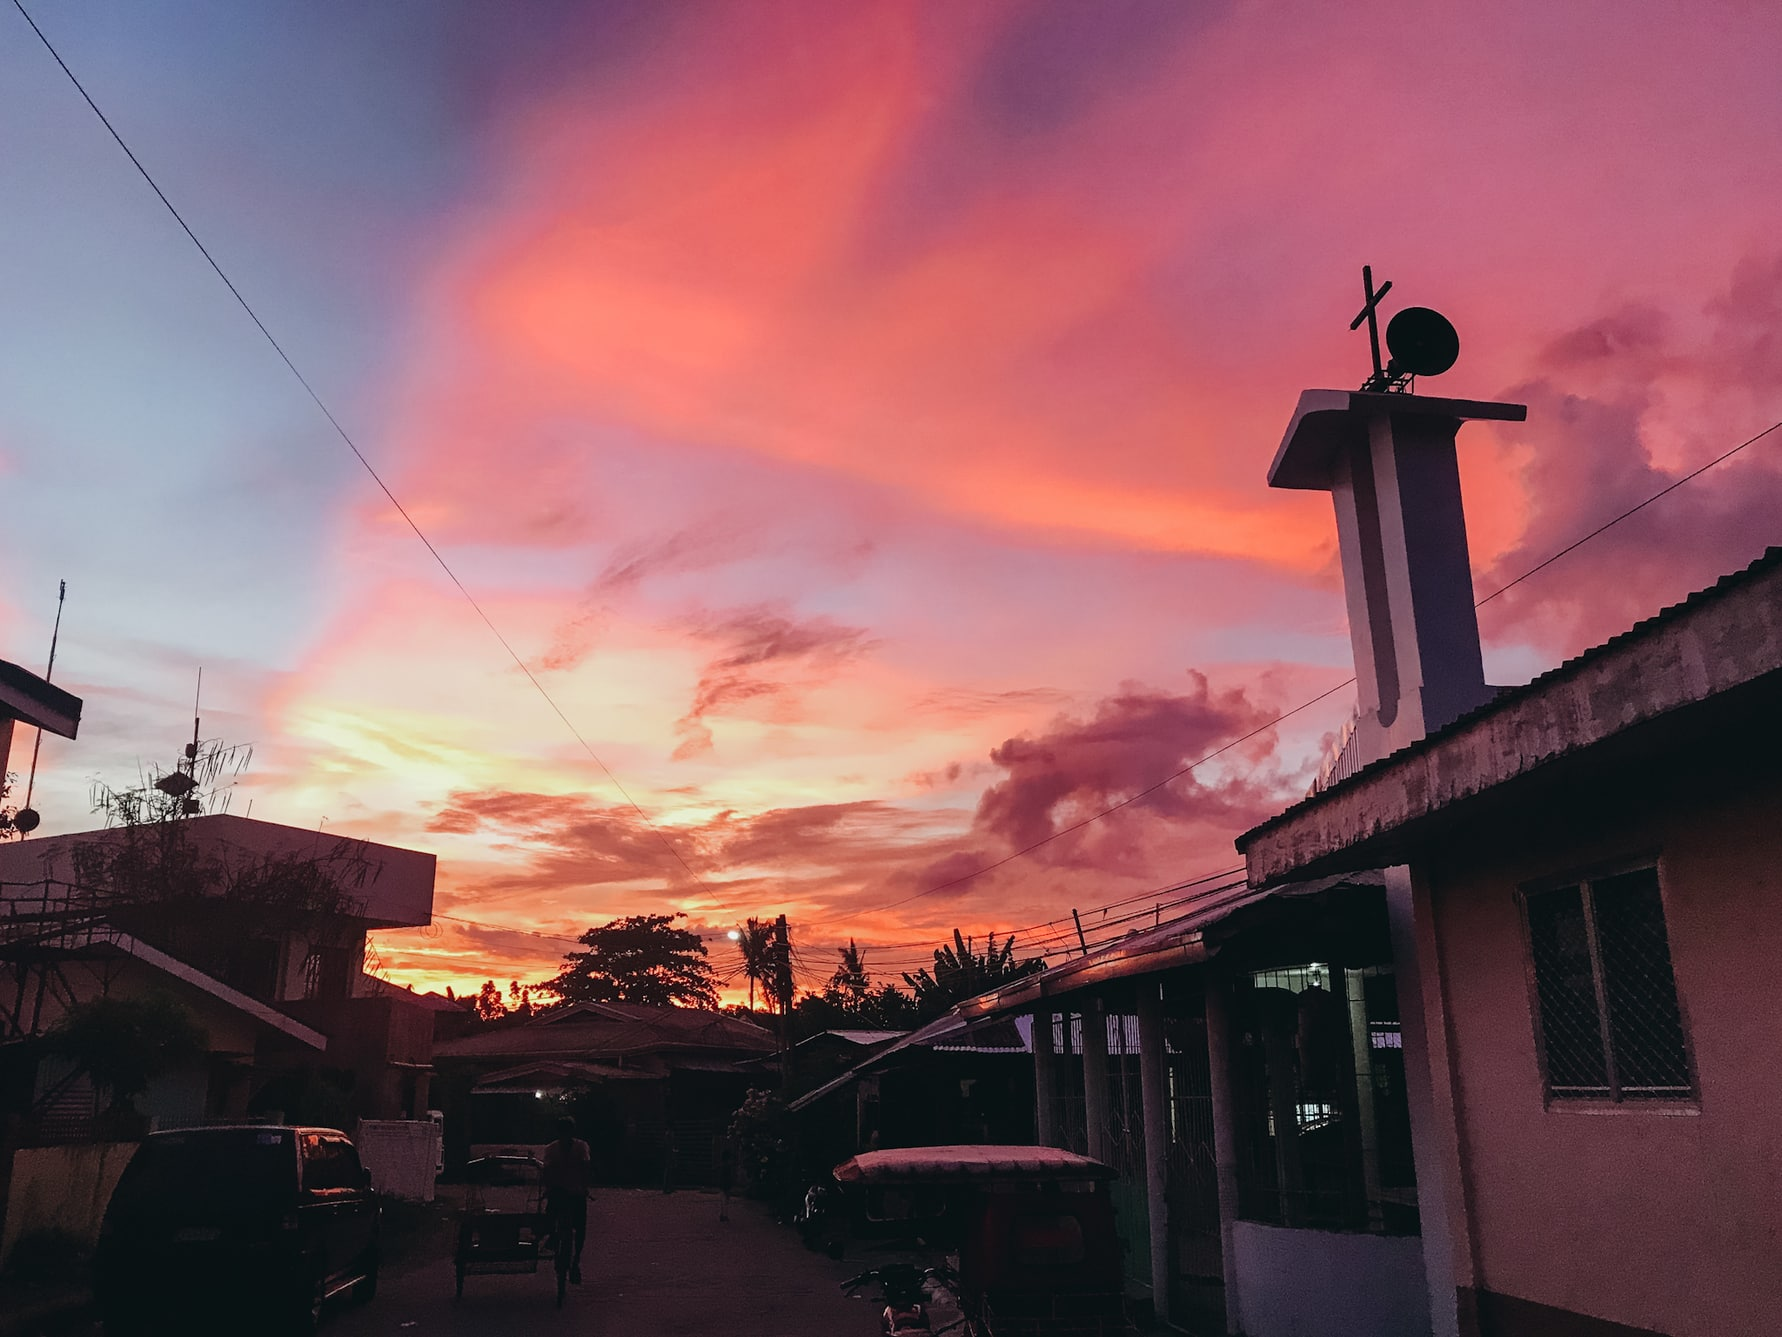 A vibraet red and pink sunset in Tacloban City, Philippines